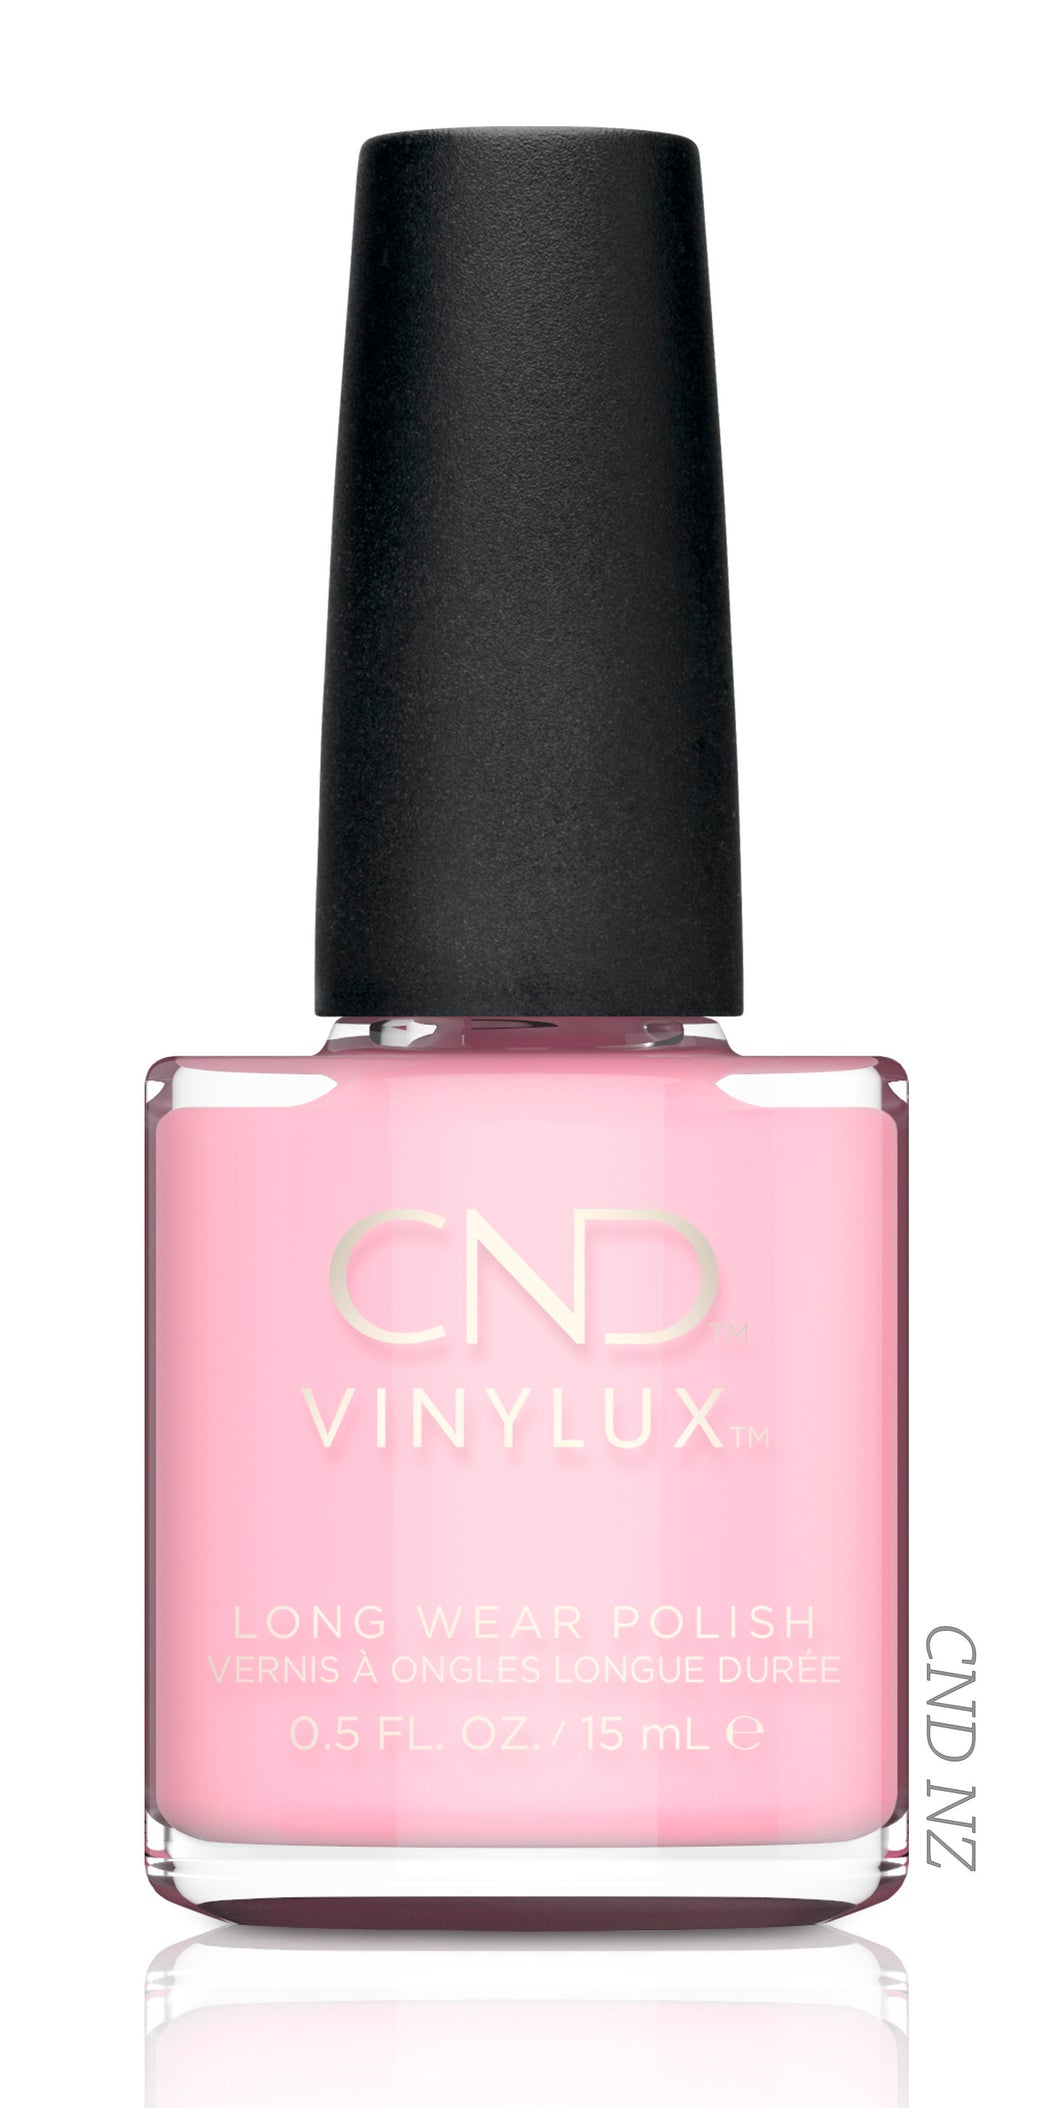 CND VINYLUX - Candied #273